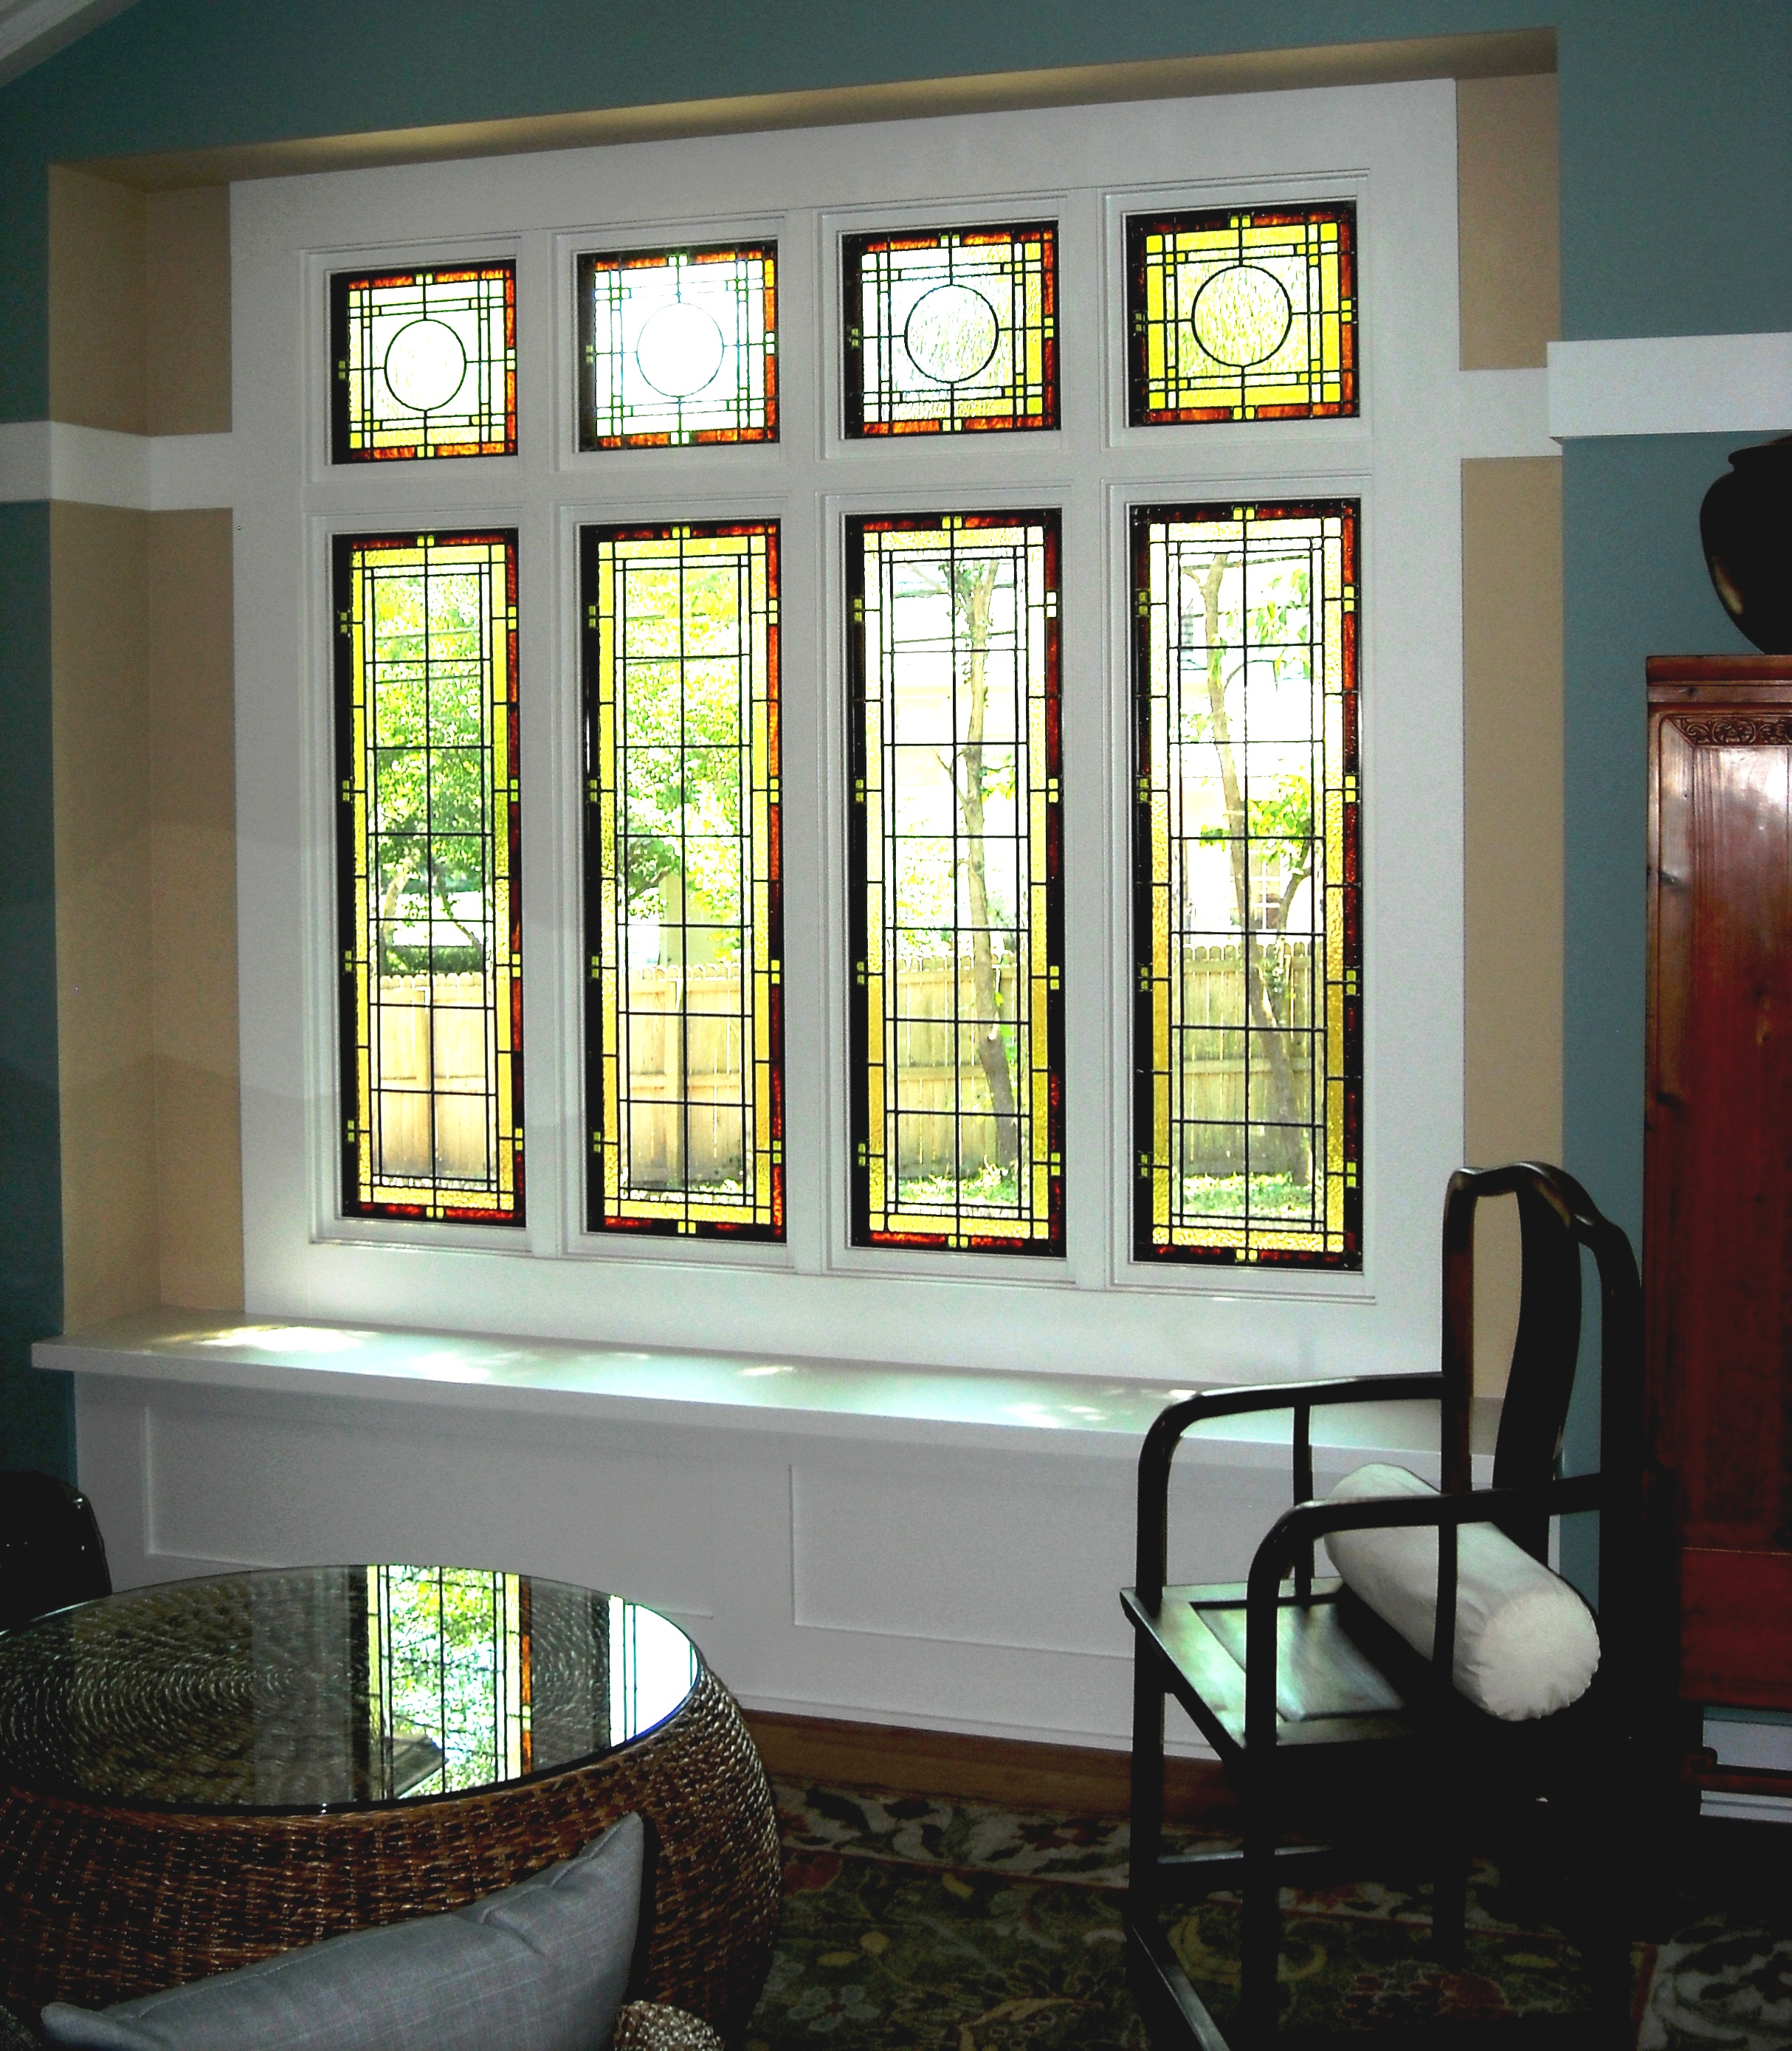 Simple Stained Glass Windows For Homes Living Room Wooden Furniture Top Wicker